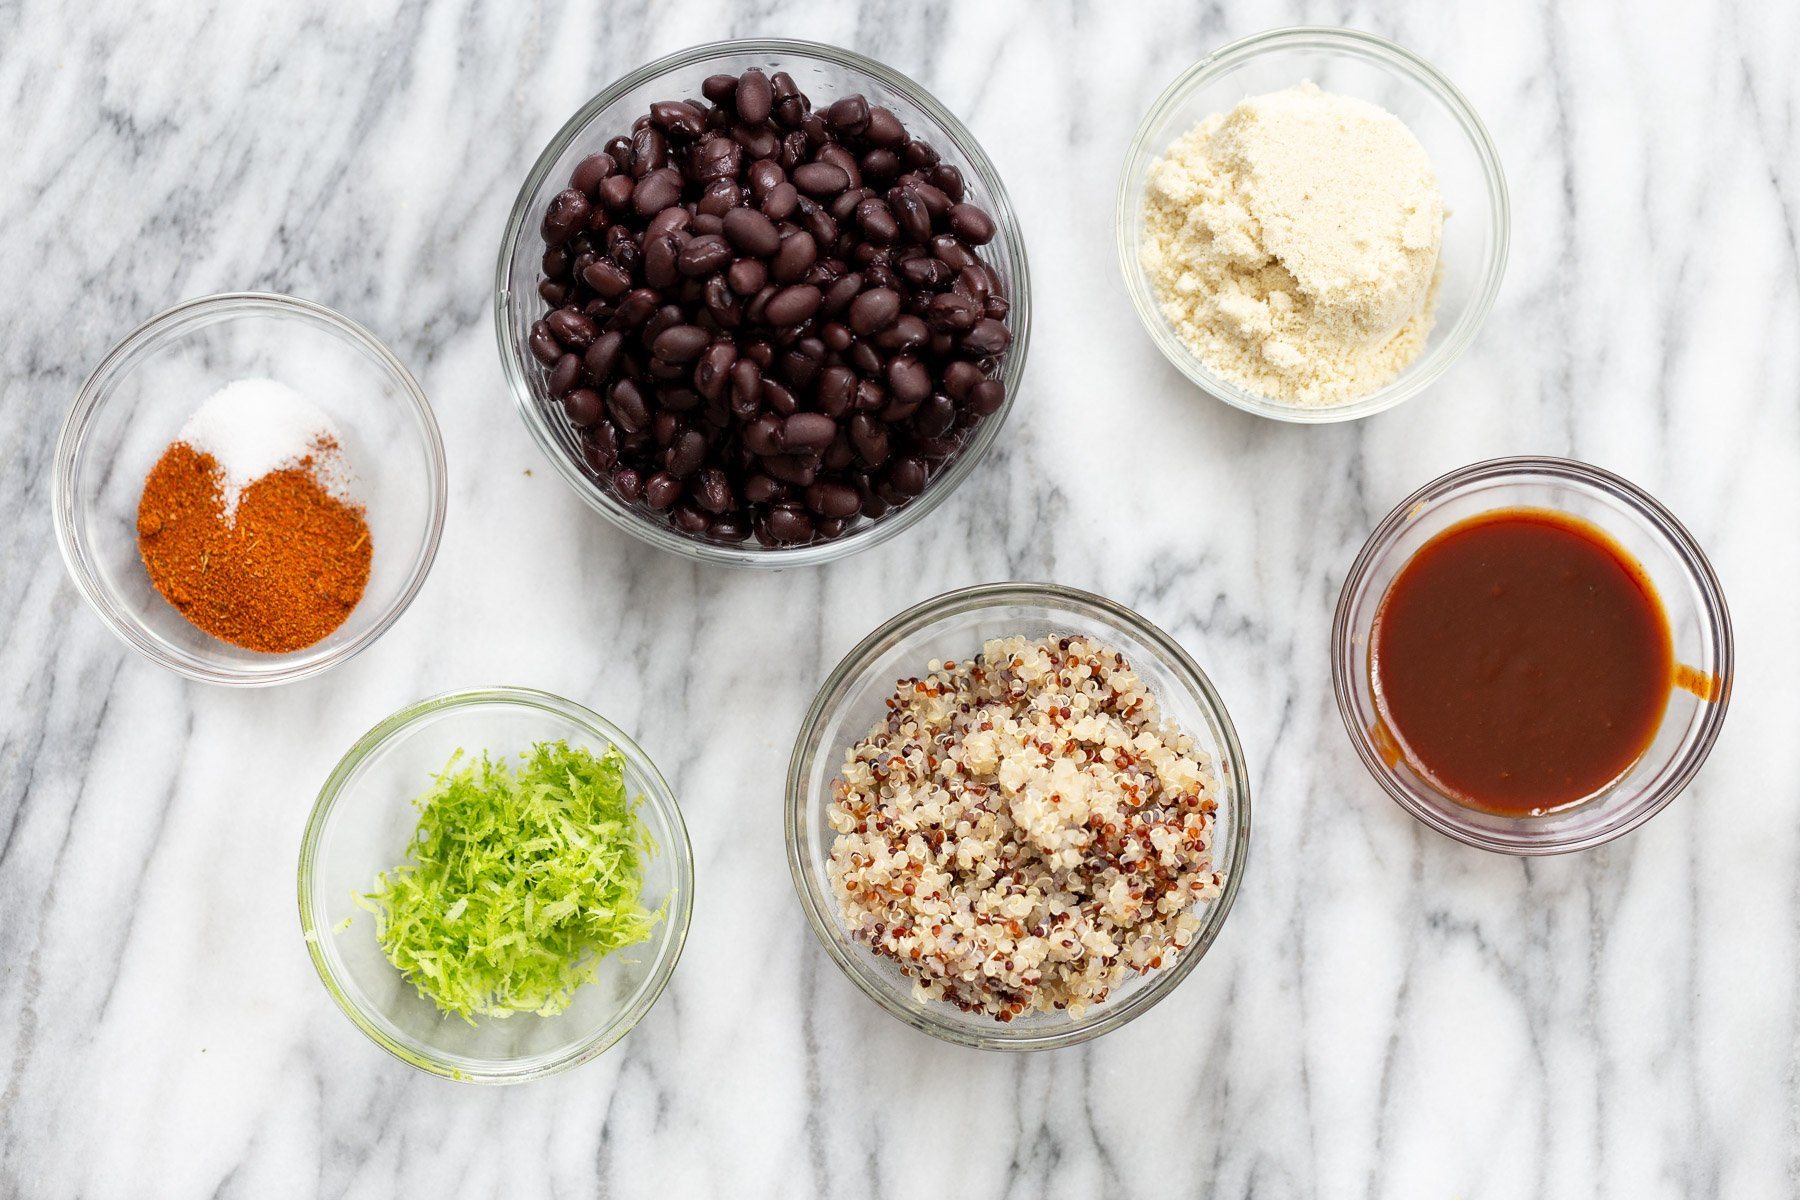 overhead shot of ingredients used for making black bean quinoa burger patties